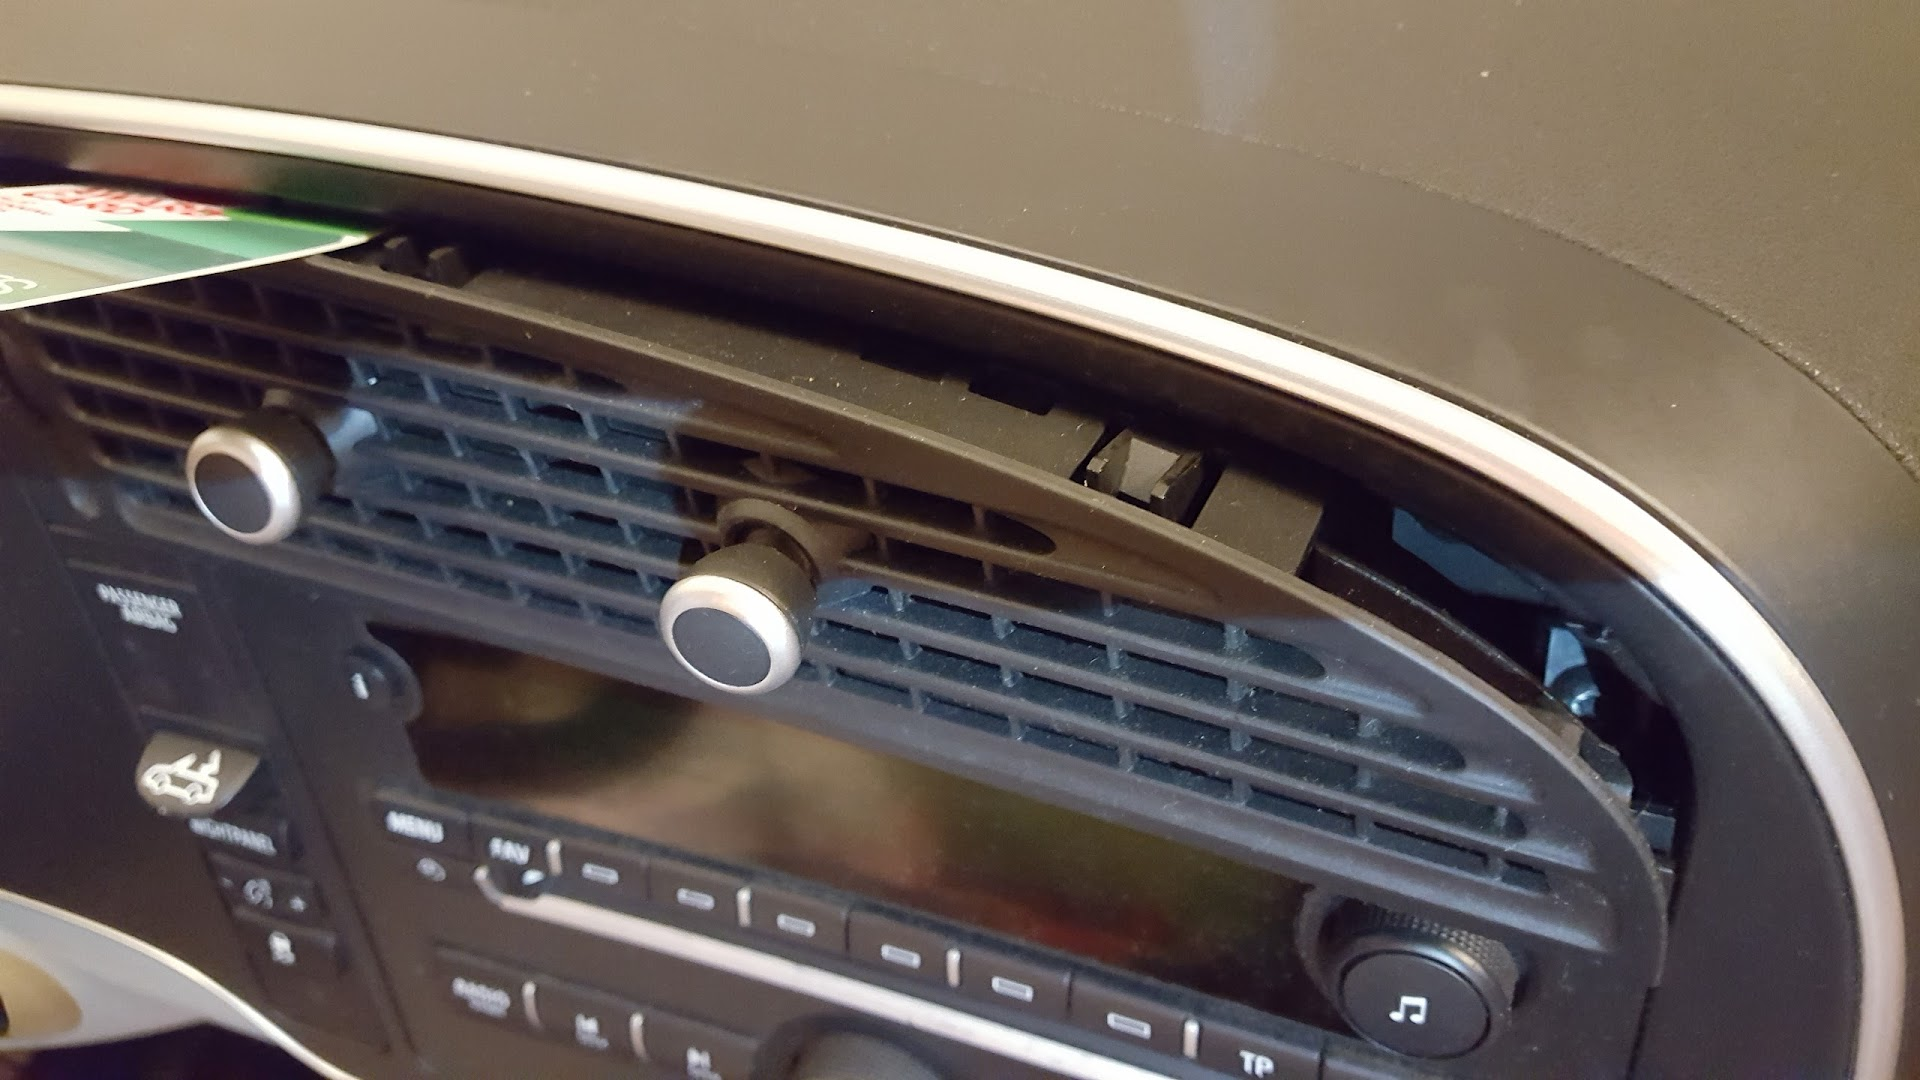 How To 2007 Aftermarket Radio Install Backup Cam Pic Heavy Saab 9 5 Reverse Sensors Wiring Diagram Report This Image